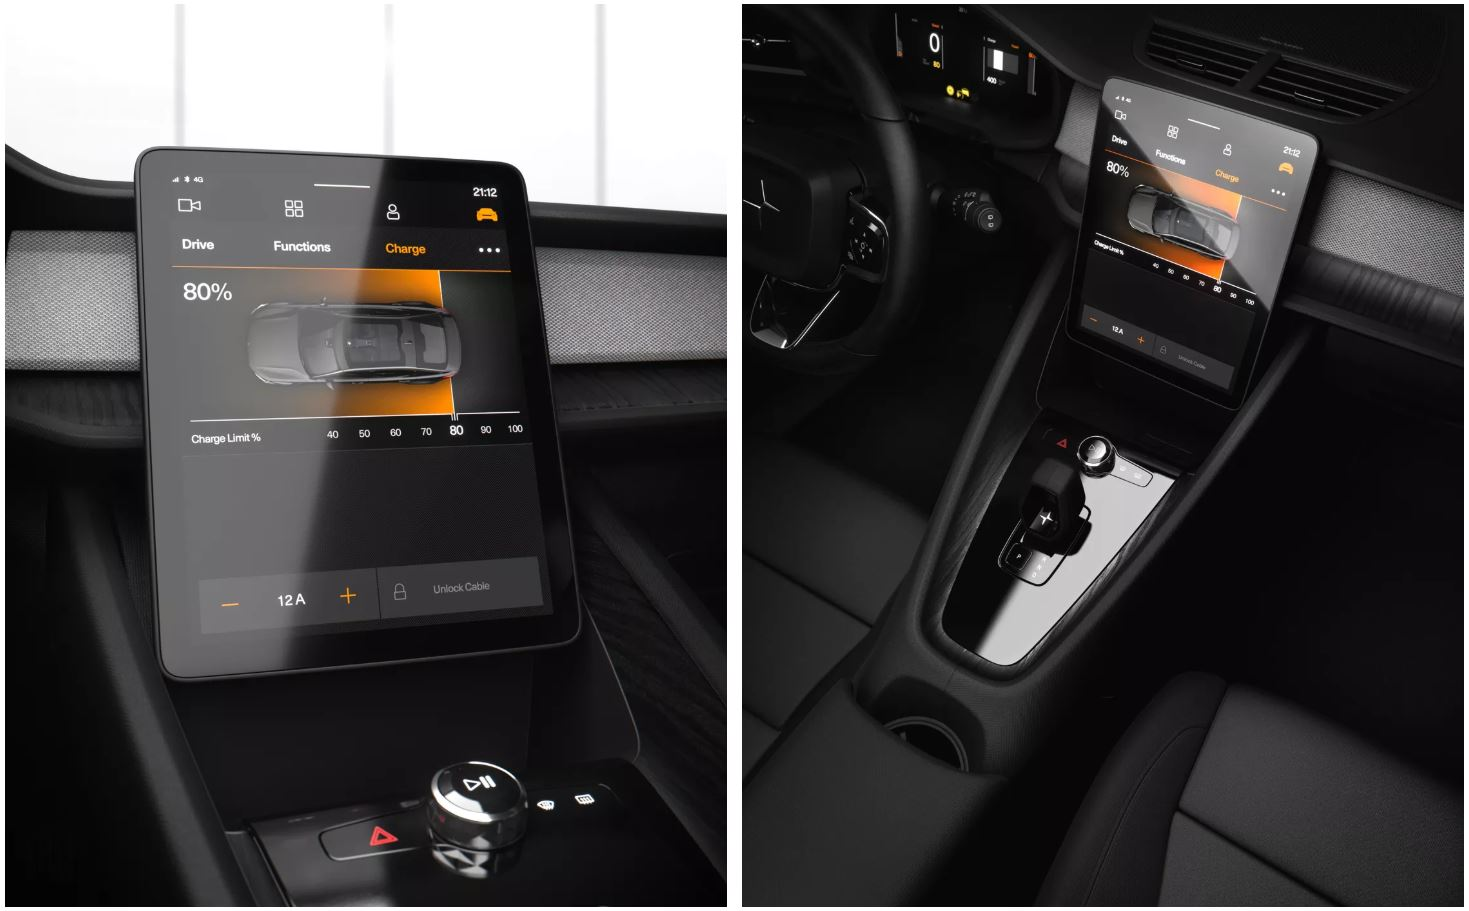 volvo polestar android automotive